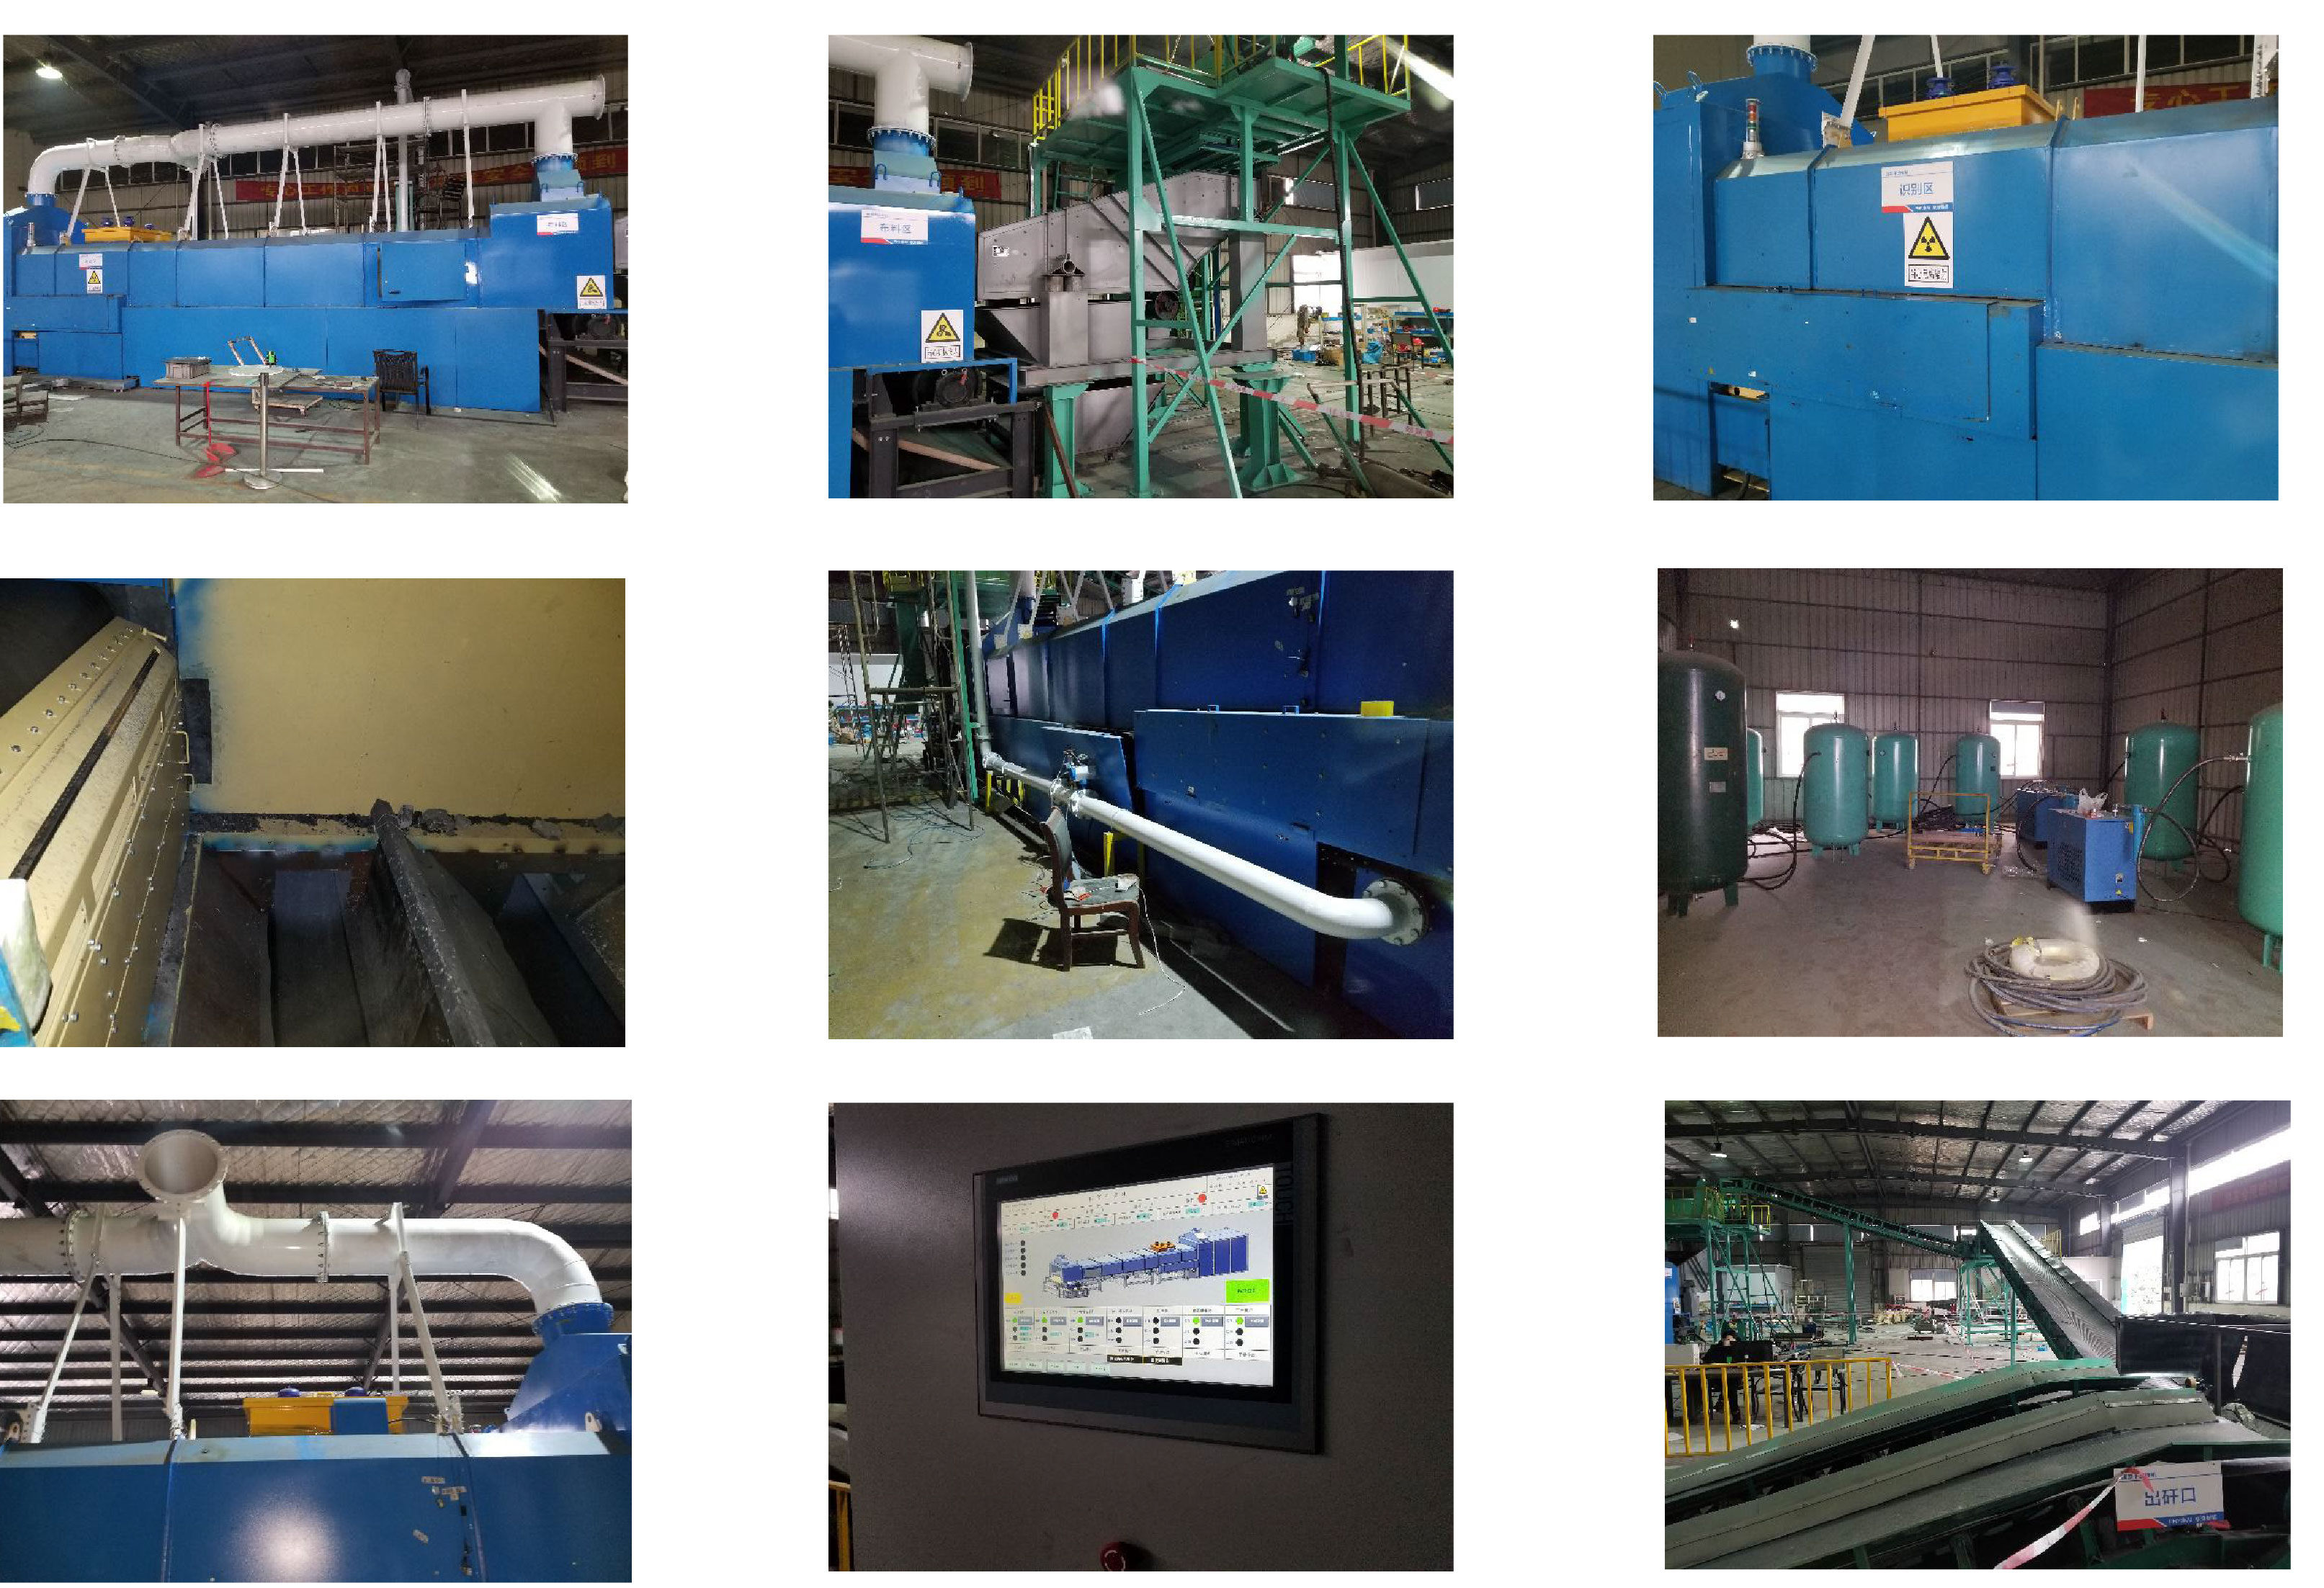 Optoelectronic Intelligent Dry-type Coal Separation sorting machine